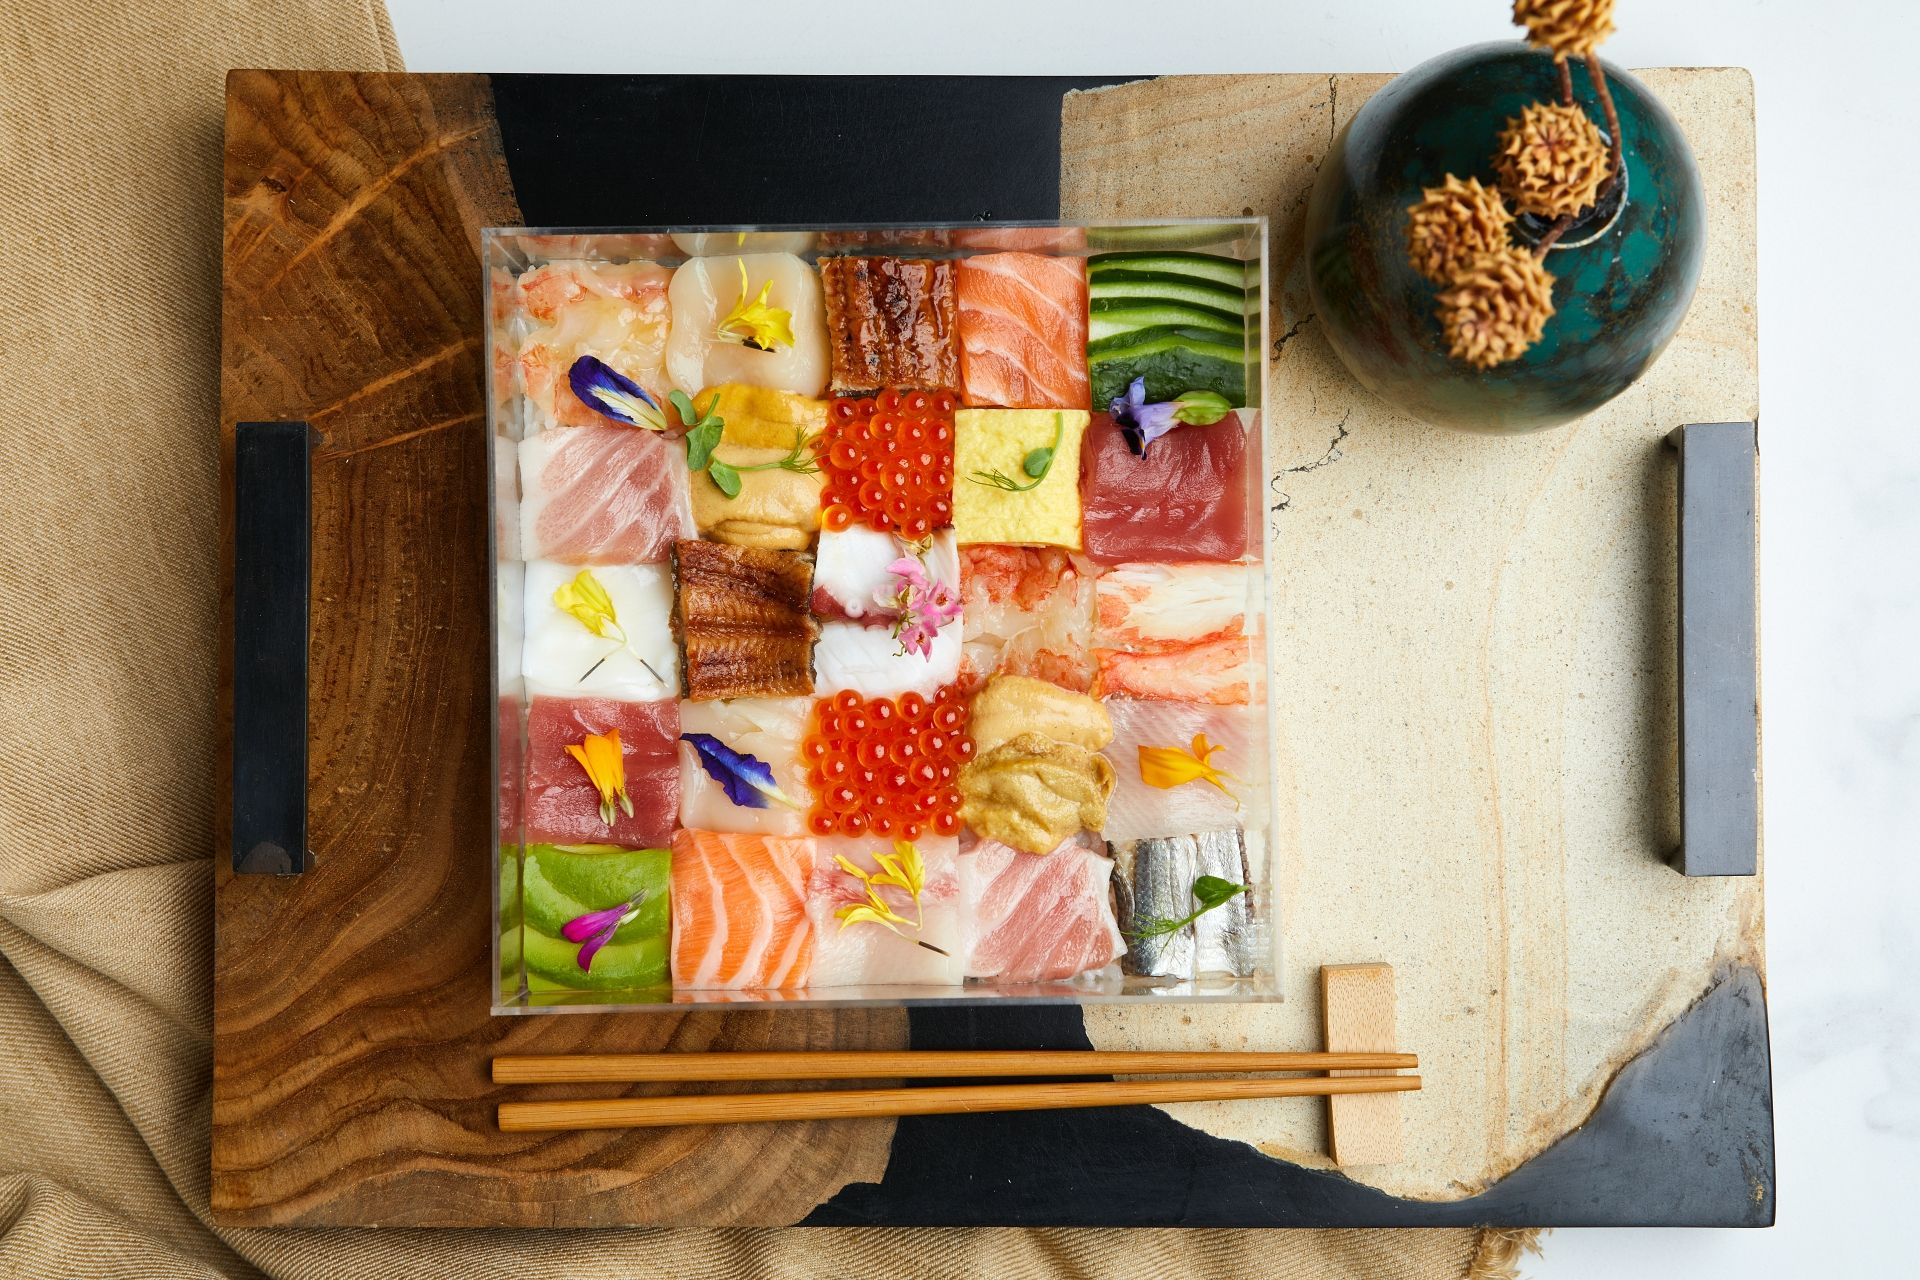 Where To Order 2021: Sushi, Sashimi And Chirashi For Delivery